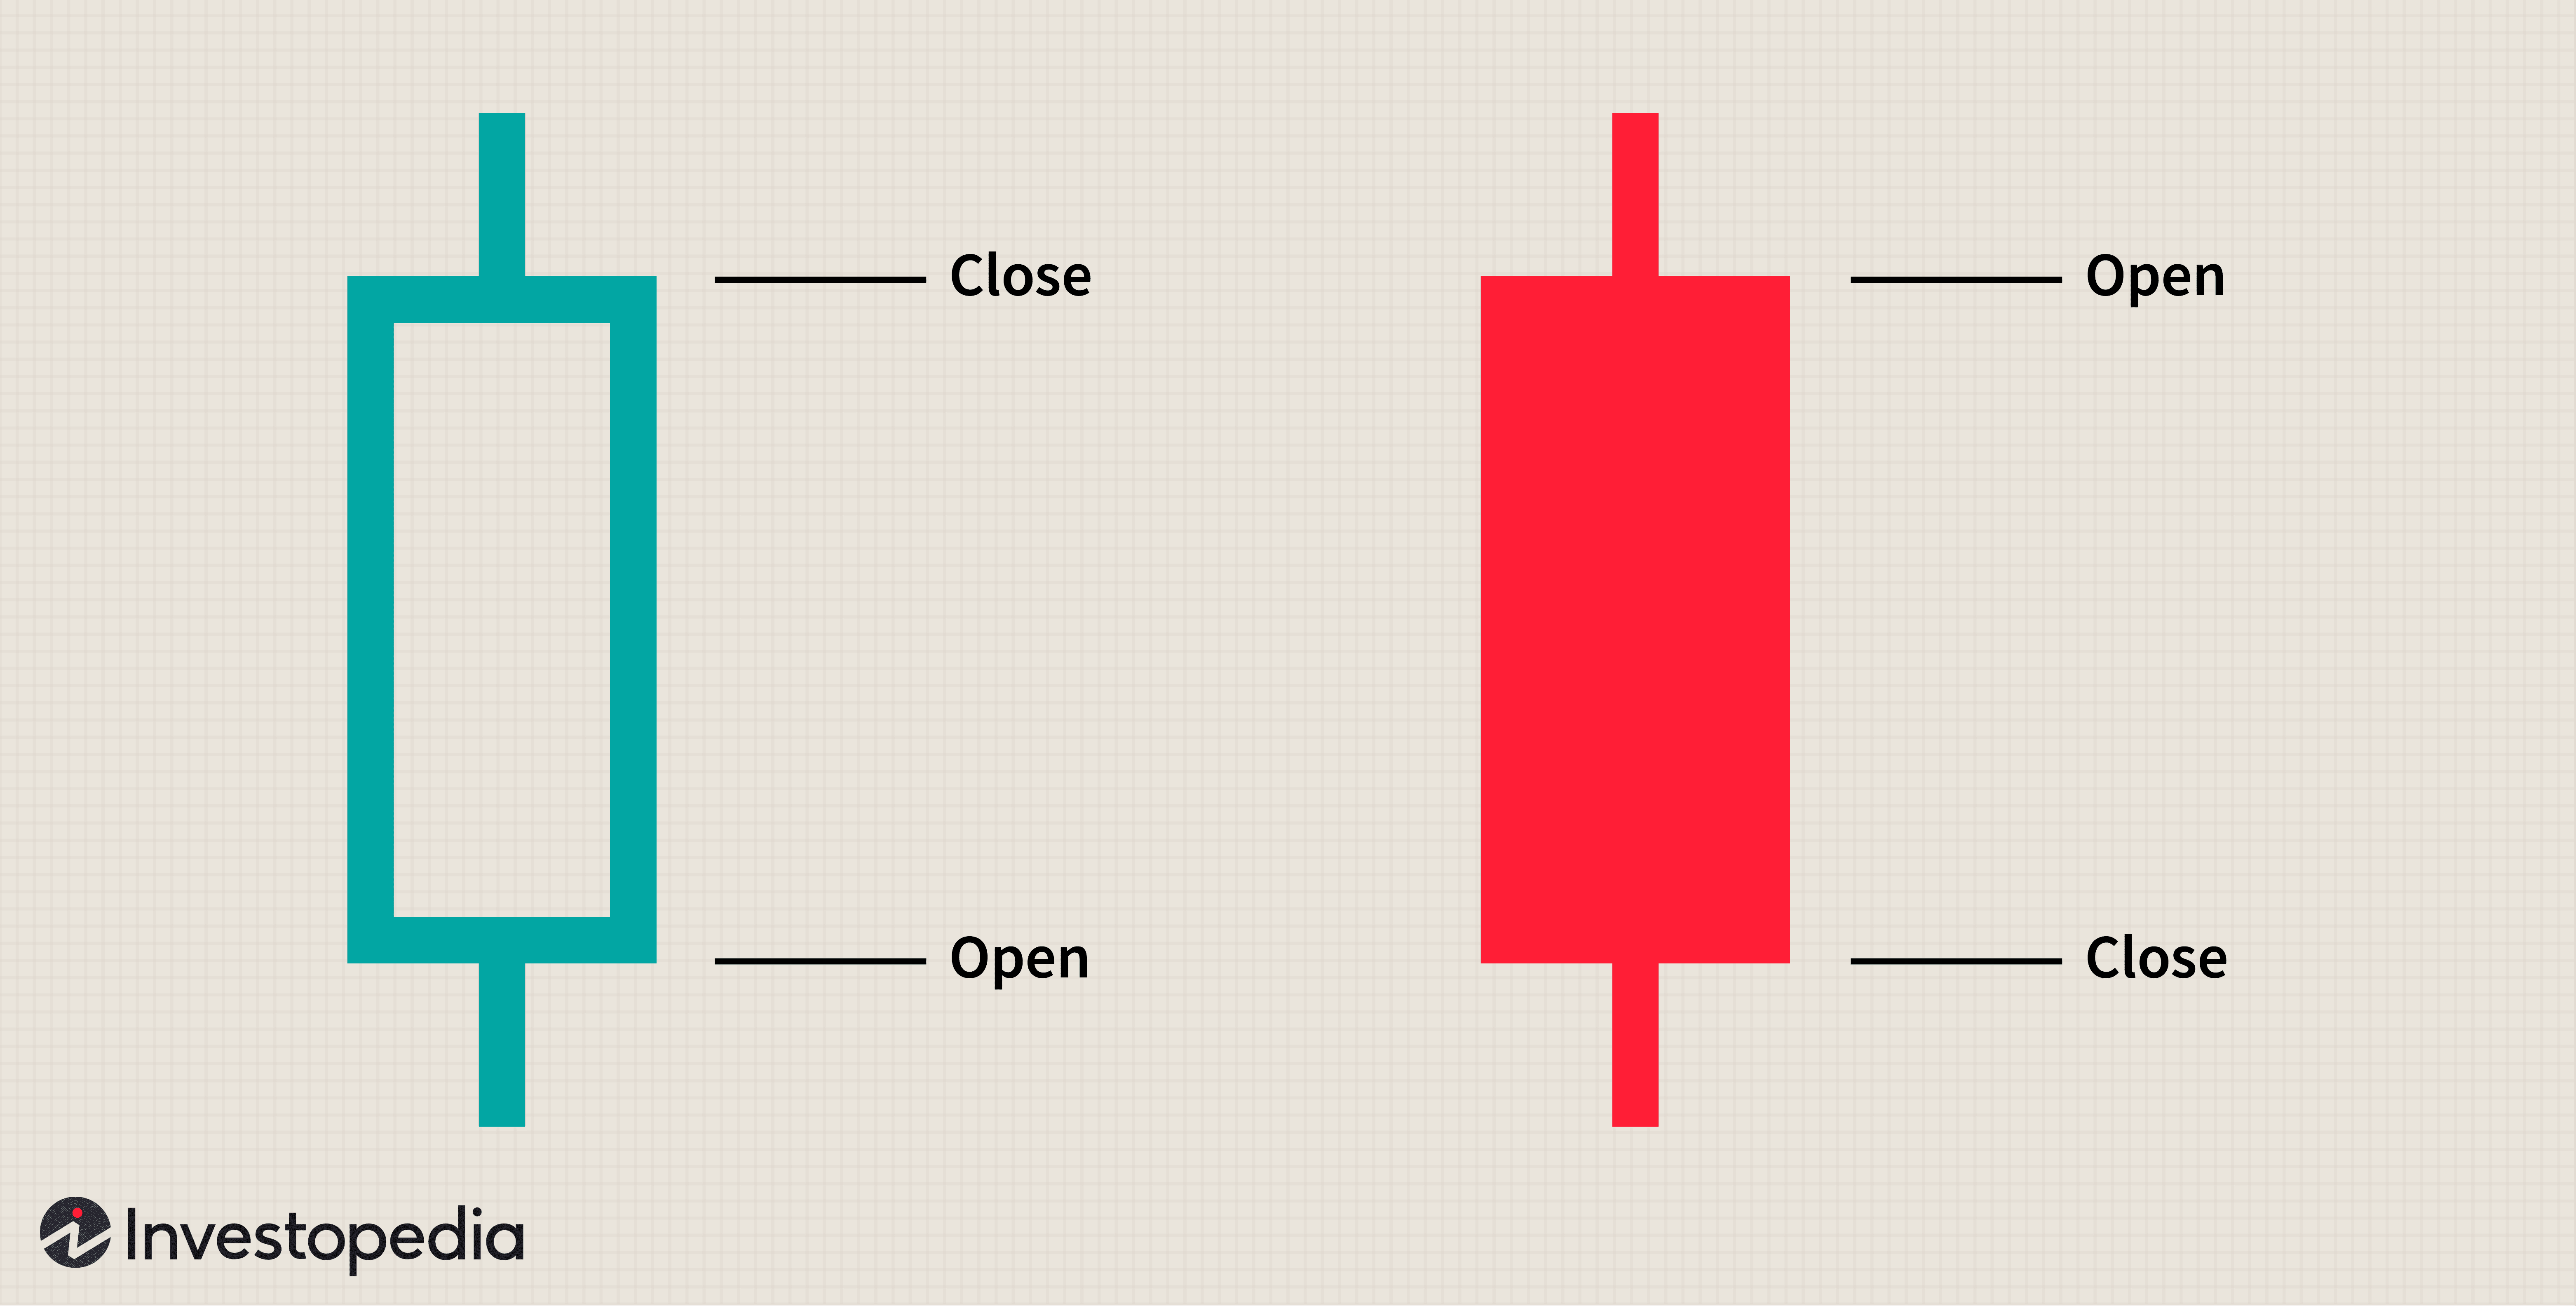 Different Colored Candlesticks in Candlestick Charting